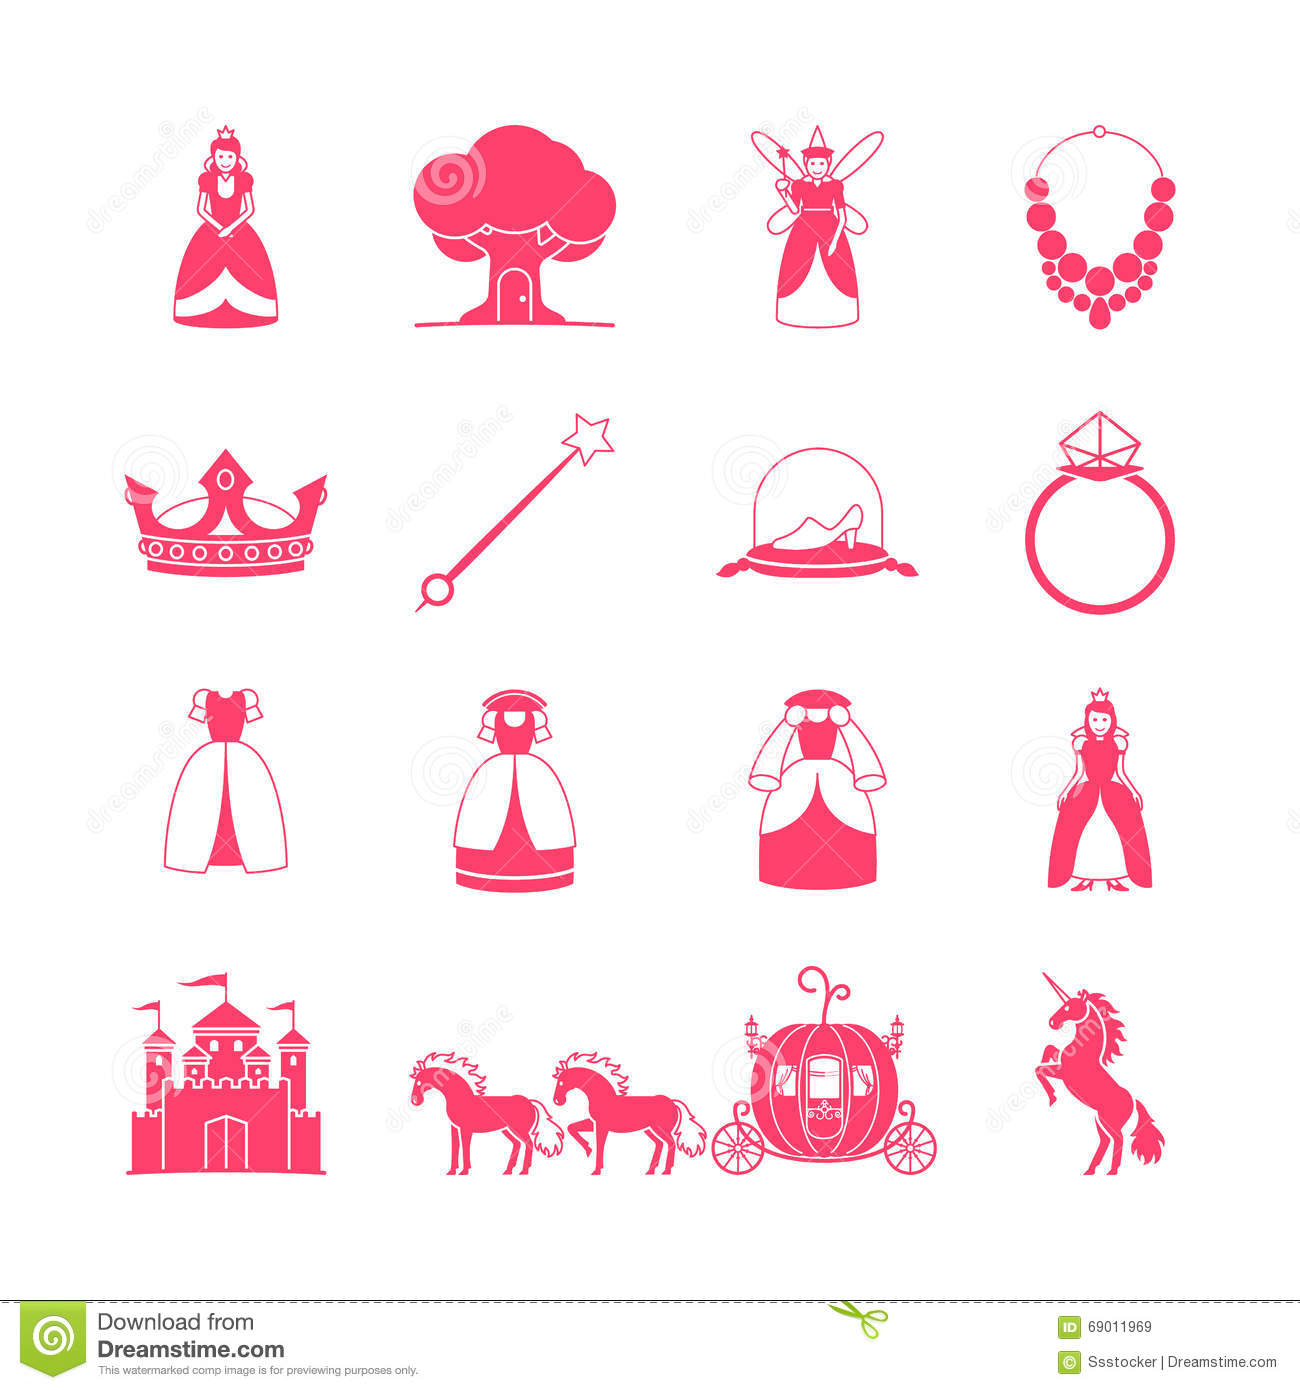 Stock vector of cartoon illustration castle isolated on white - Princess Fairytale Icon Set Stock Vector Image 69011969